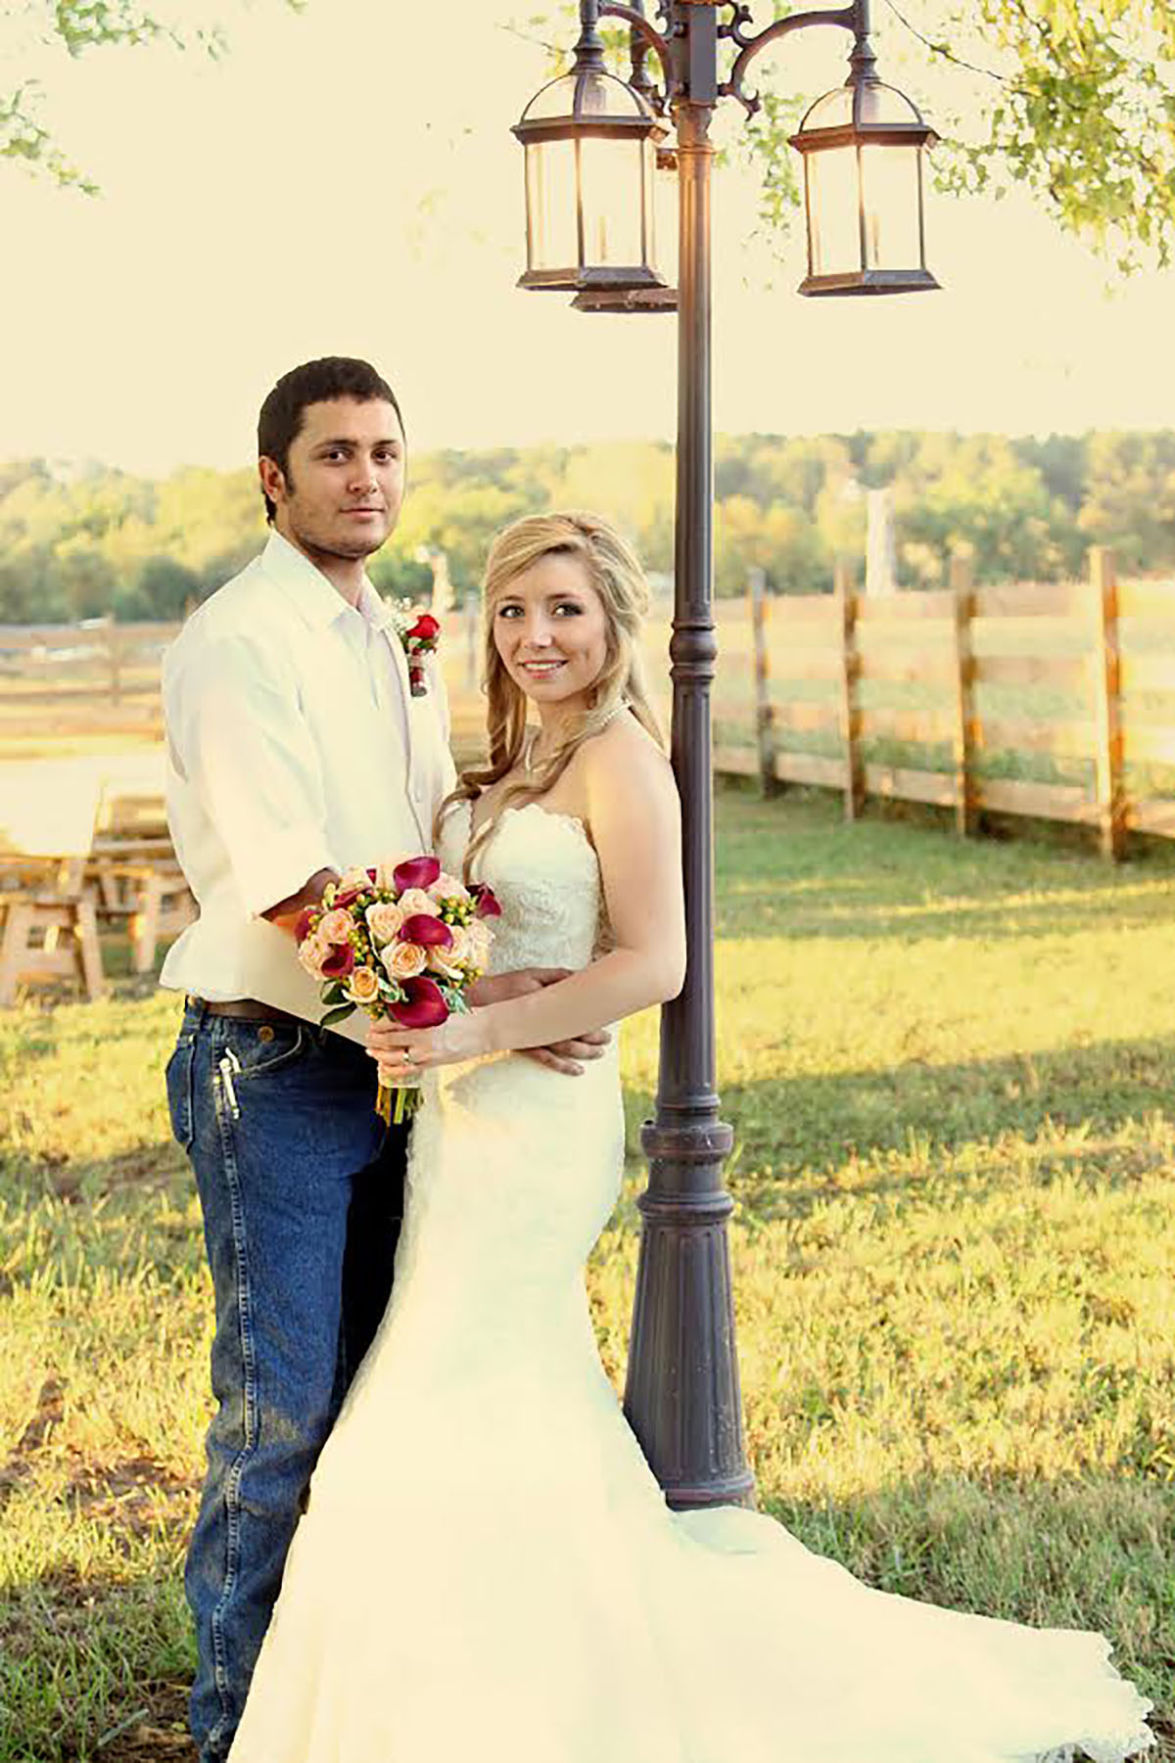 Mr. and Mrs. Kyle Russell